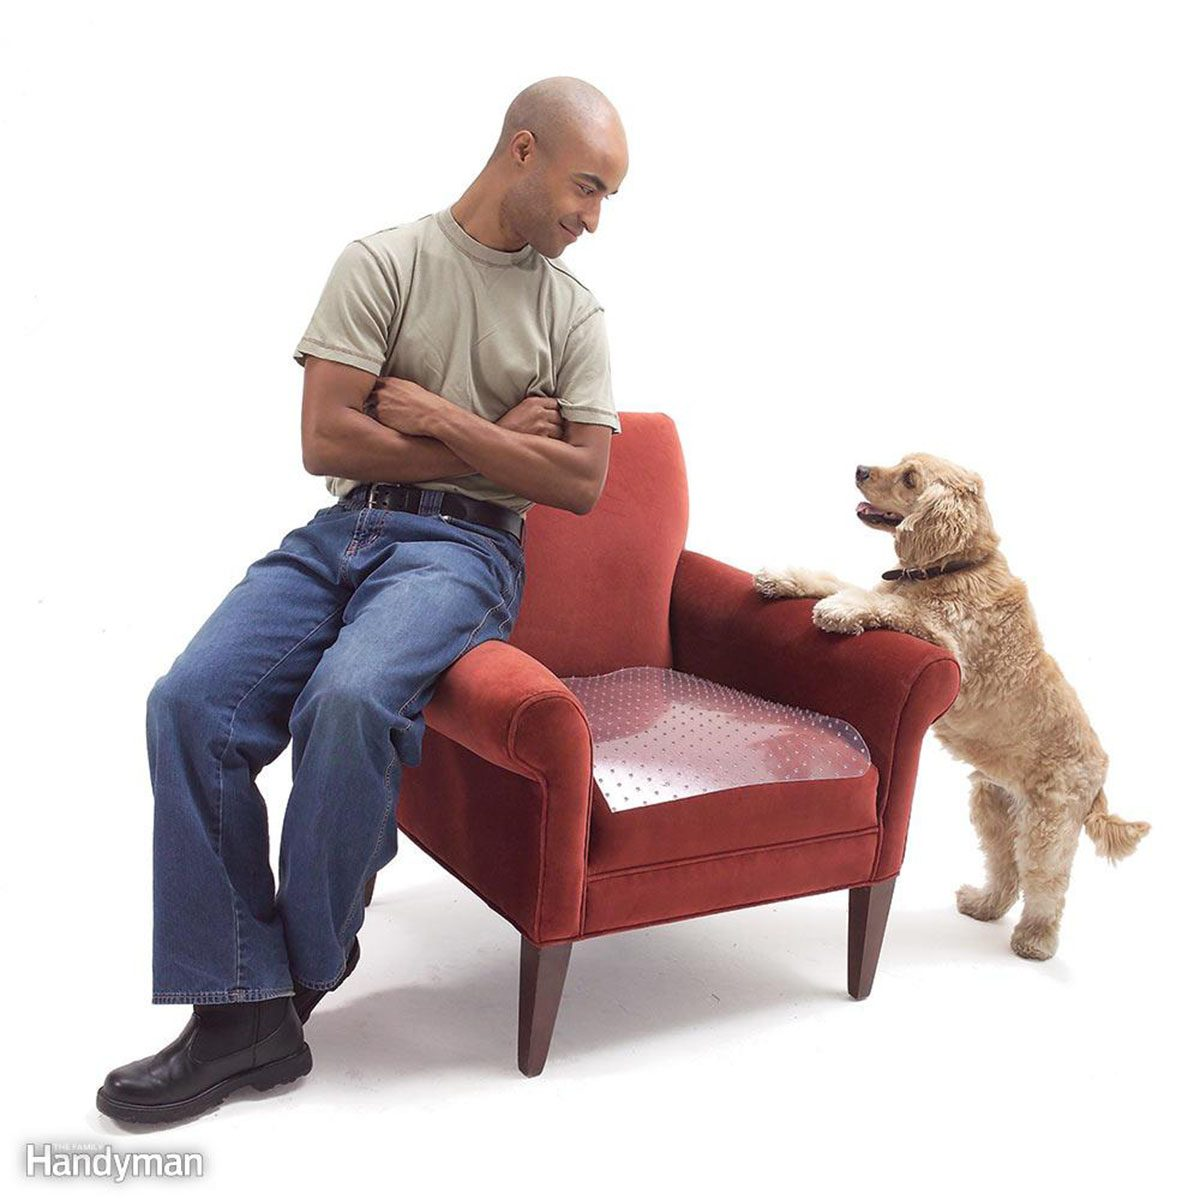 Man and dog sitting on the arms of a chair